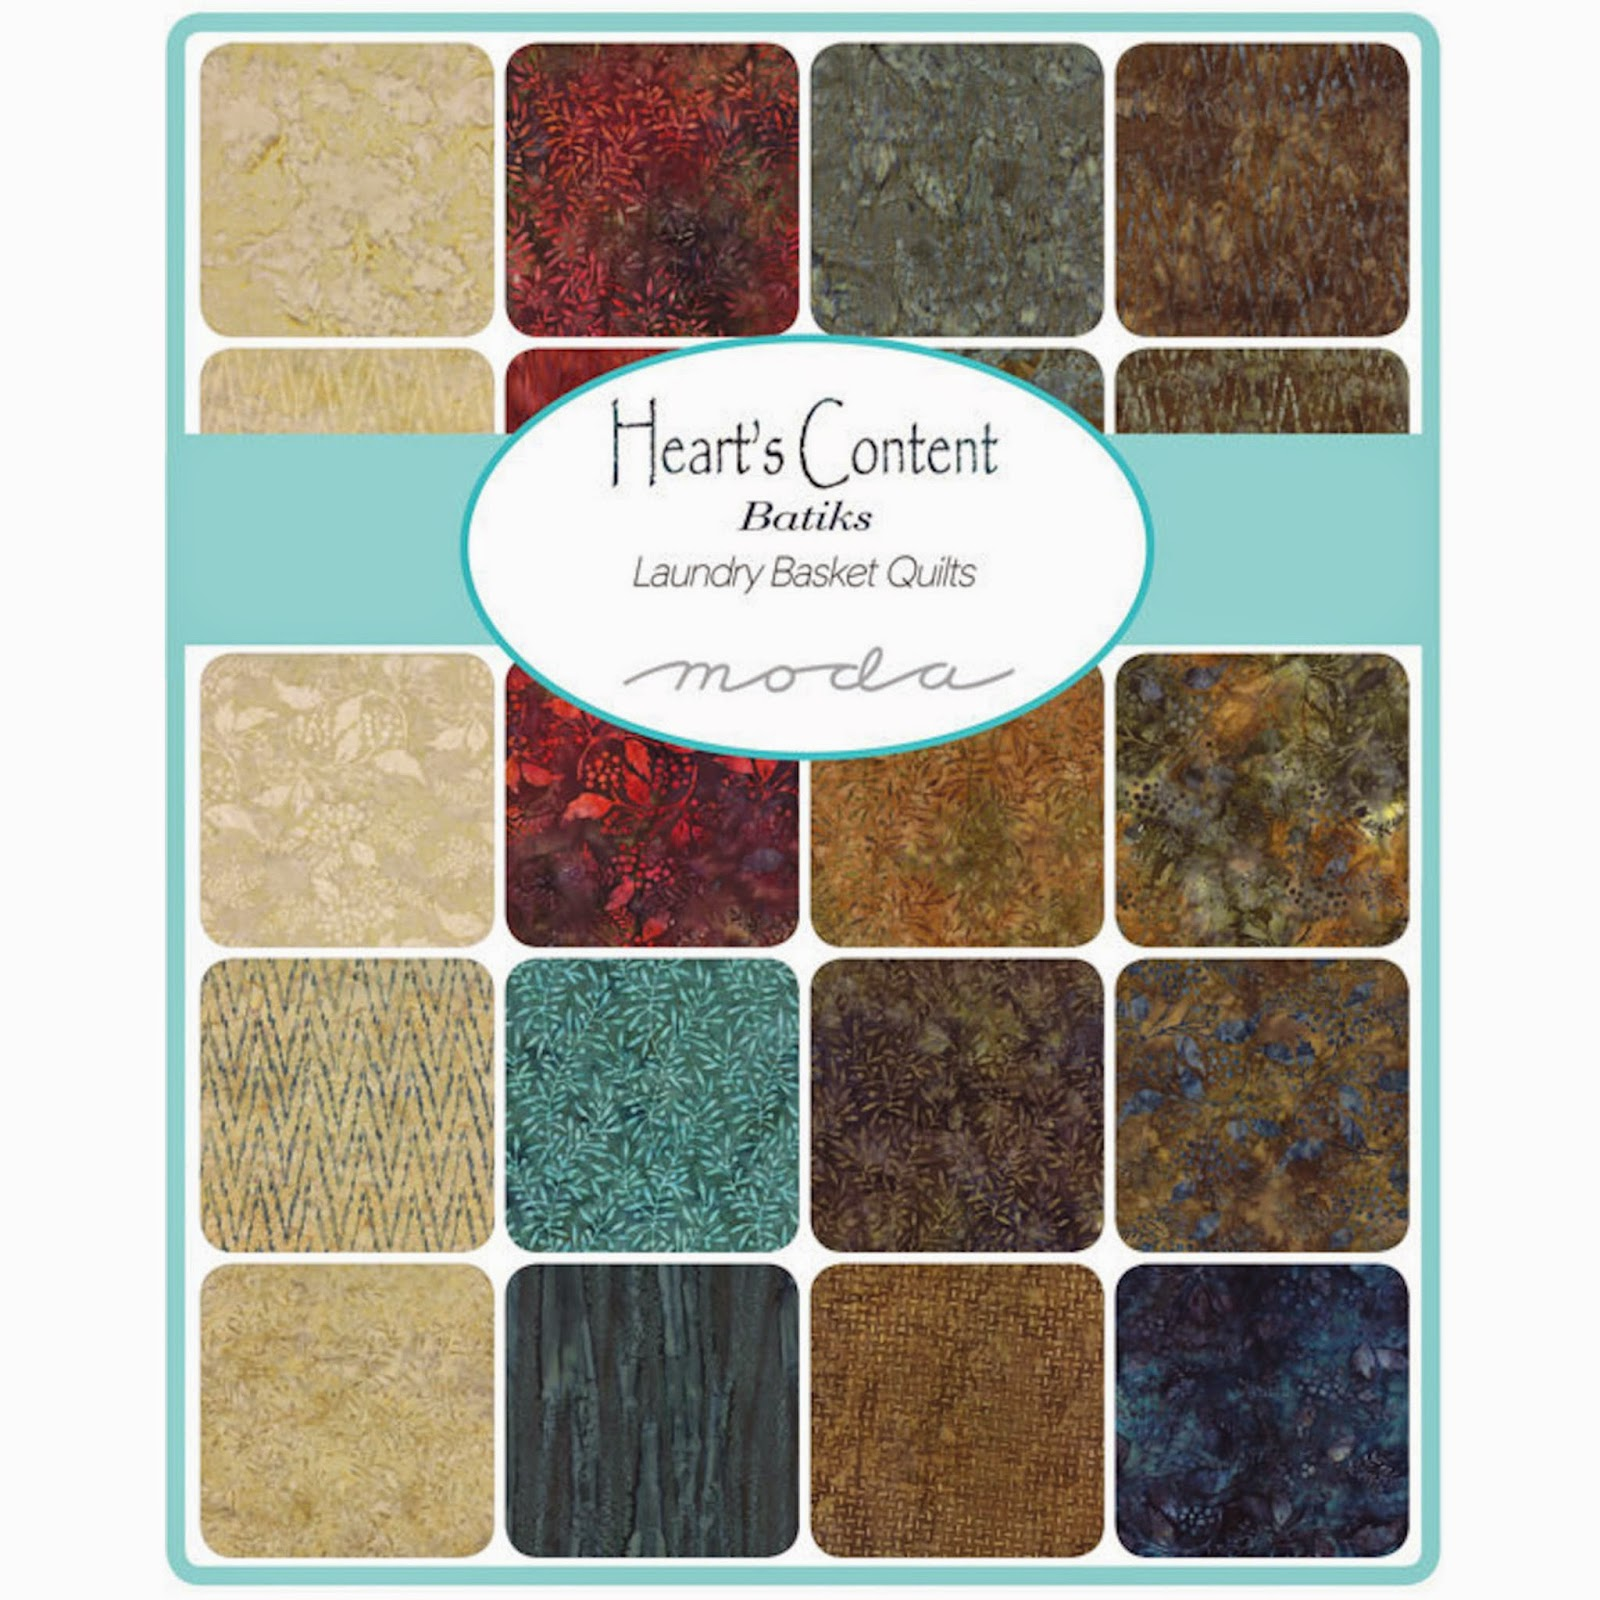 Moda HEART'S CONTENT BATIKS Fabric by Laundry Basket Quilts